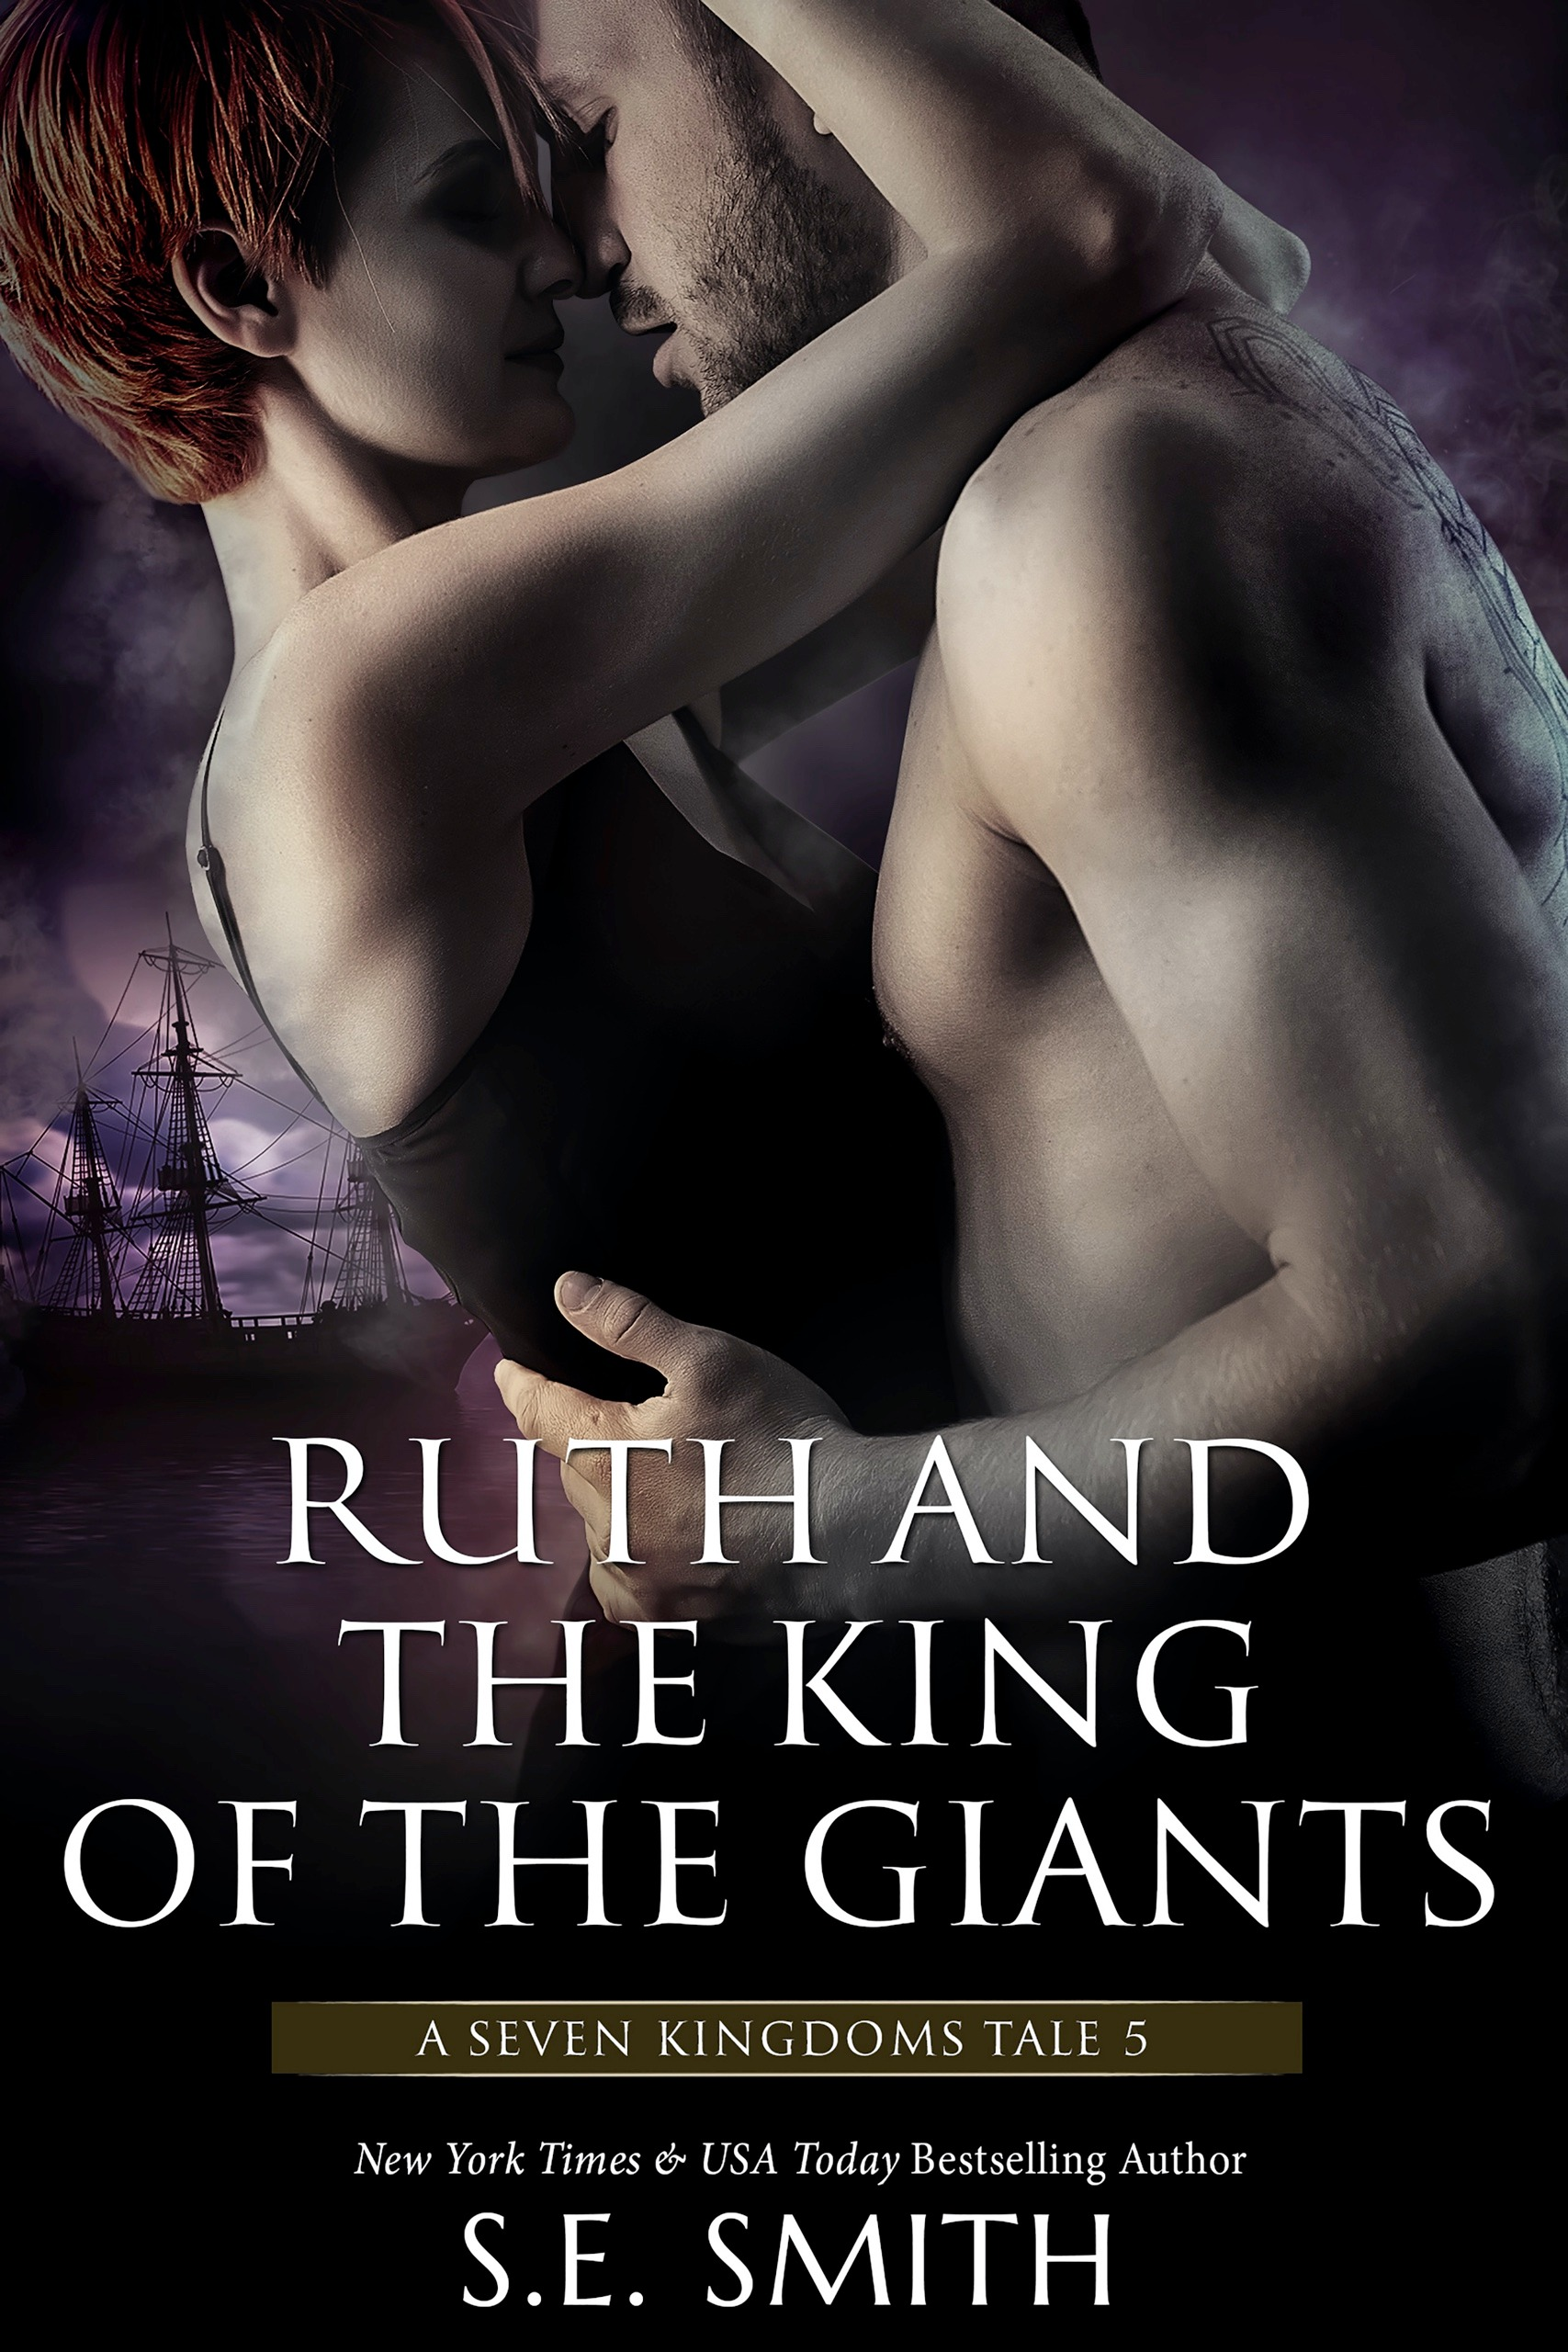 Ruth and the King of the Giants: A Seven Kingdoms Tale 5 (Paperback)